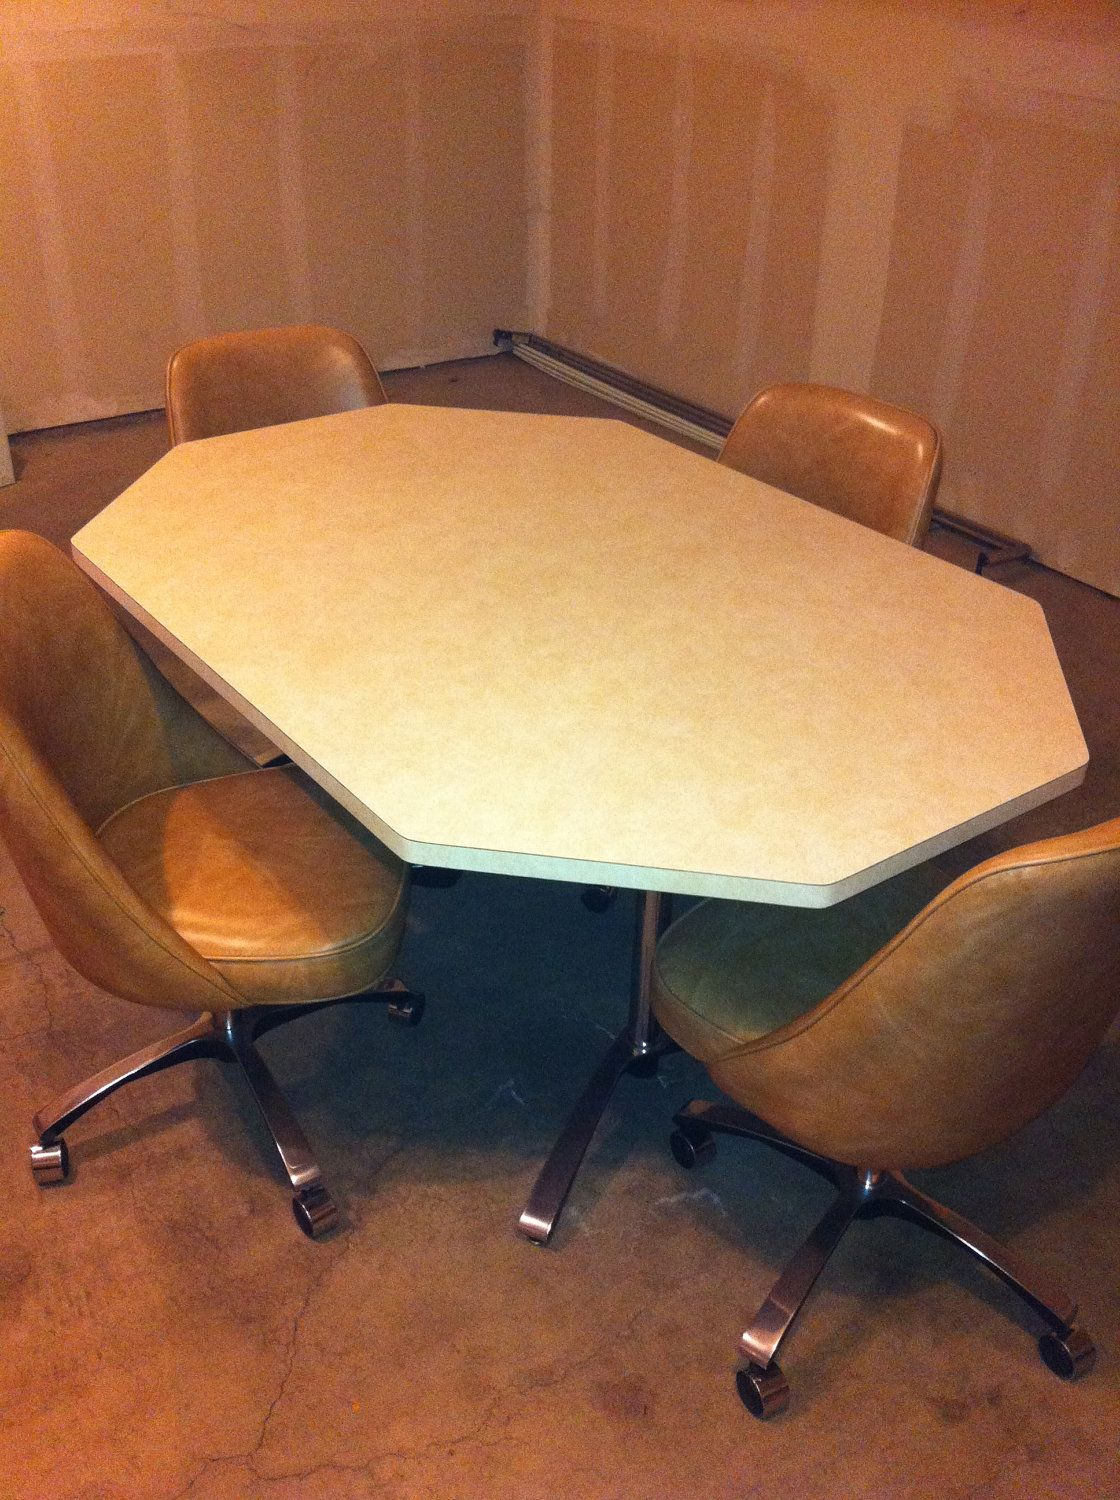 Chromcraft-Style Kitchen Dinette Set. Had this in the 70s | Old 40 ...